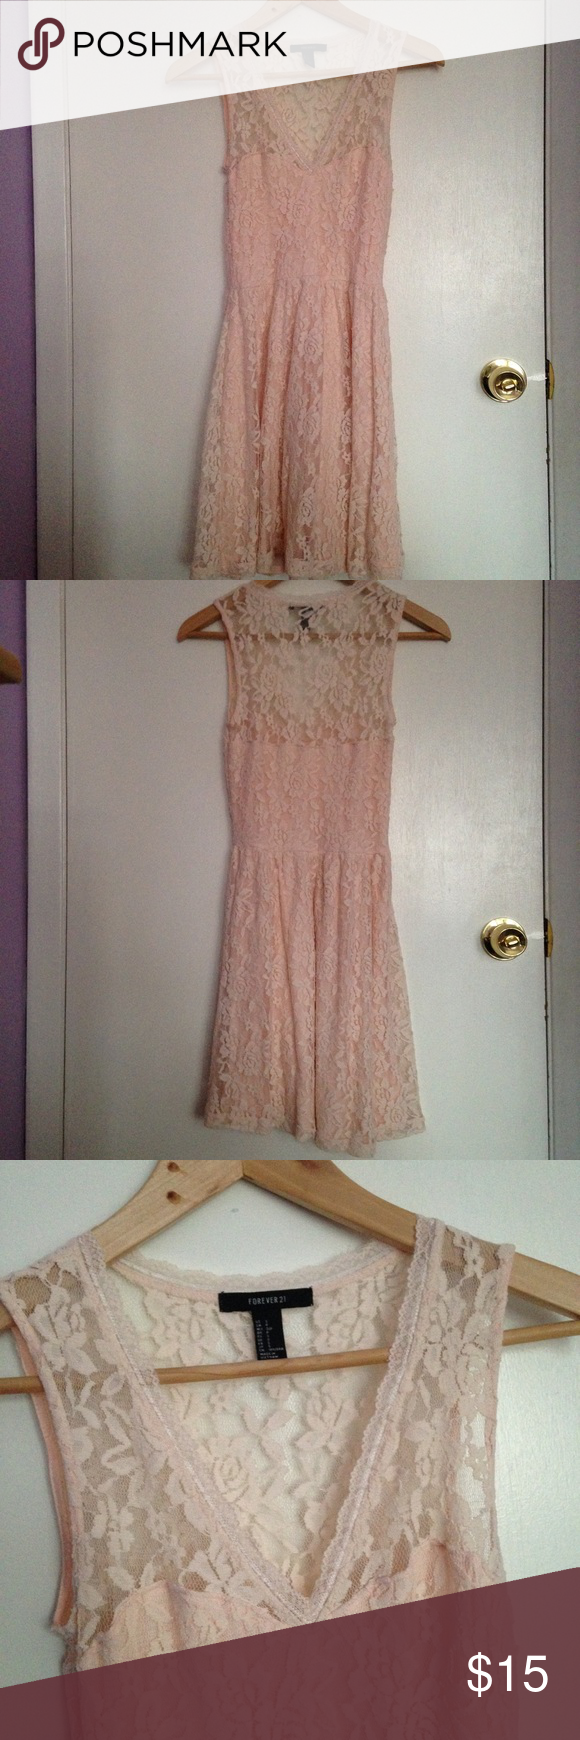 Lace Pink F21 Dress Feminine floral lace layer with solid light pink layer underneath. Only worn once in great condition! Forever 21 Dresses Midi